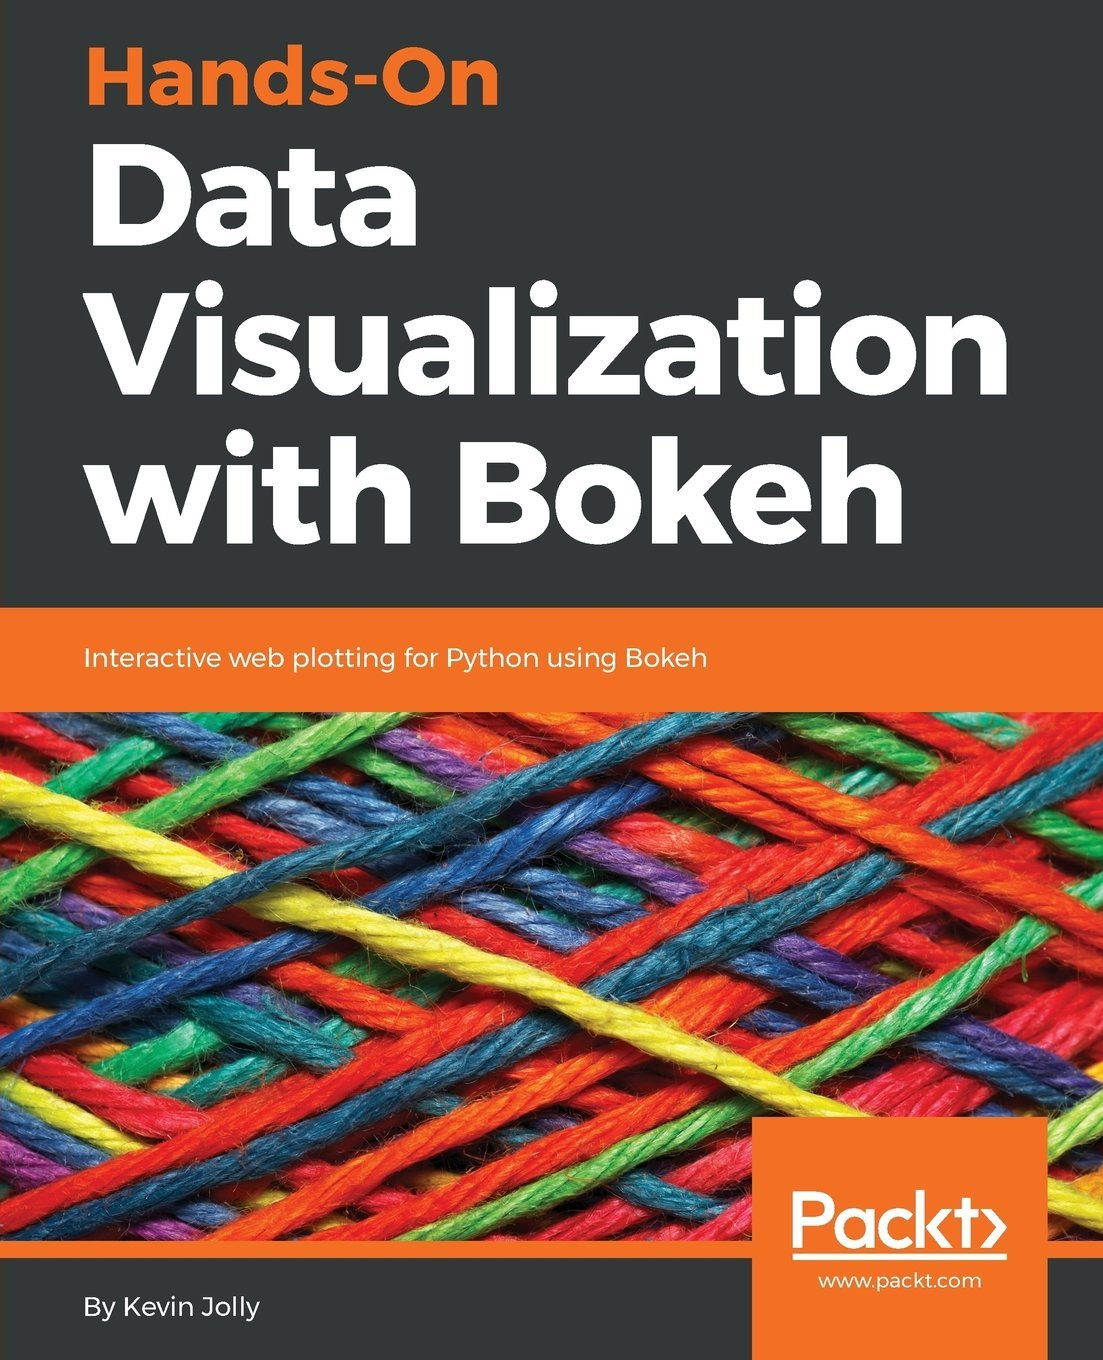 Hands-On Data Visualization with Bokeh: Interactive web